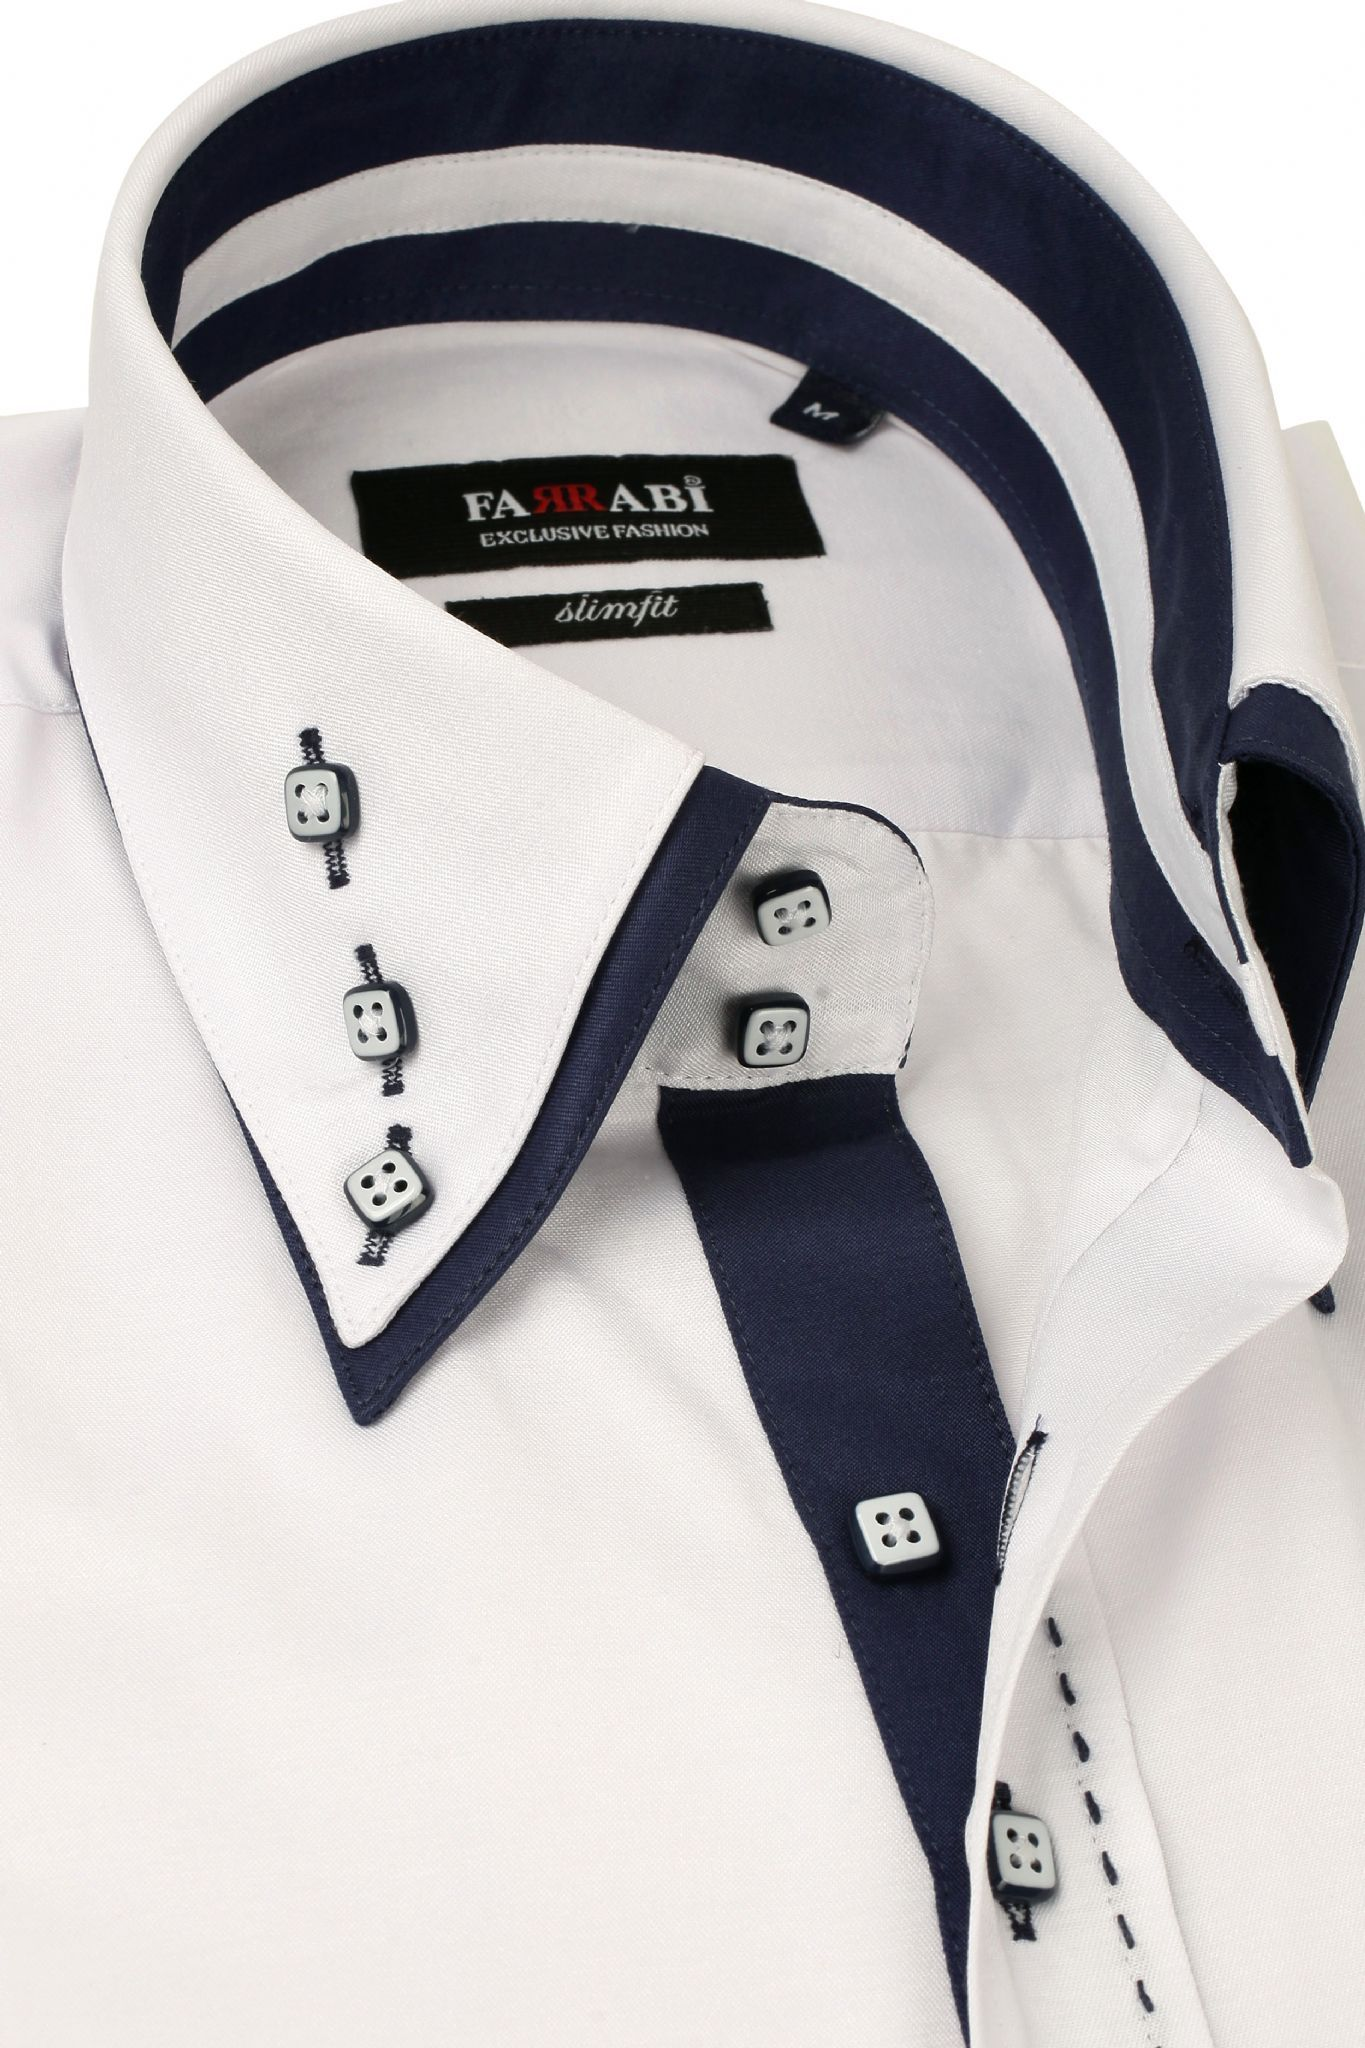 Mens Double Collar White Dress Shirt Farrabi Slim Fit Exclusive